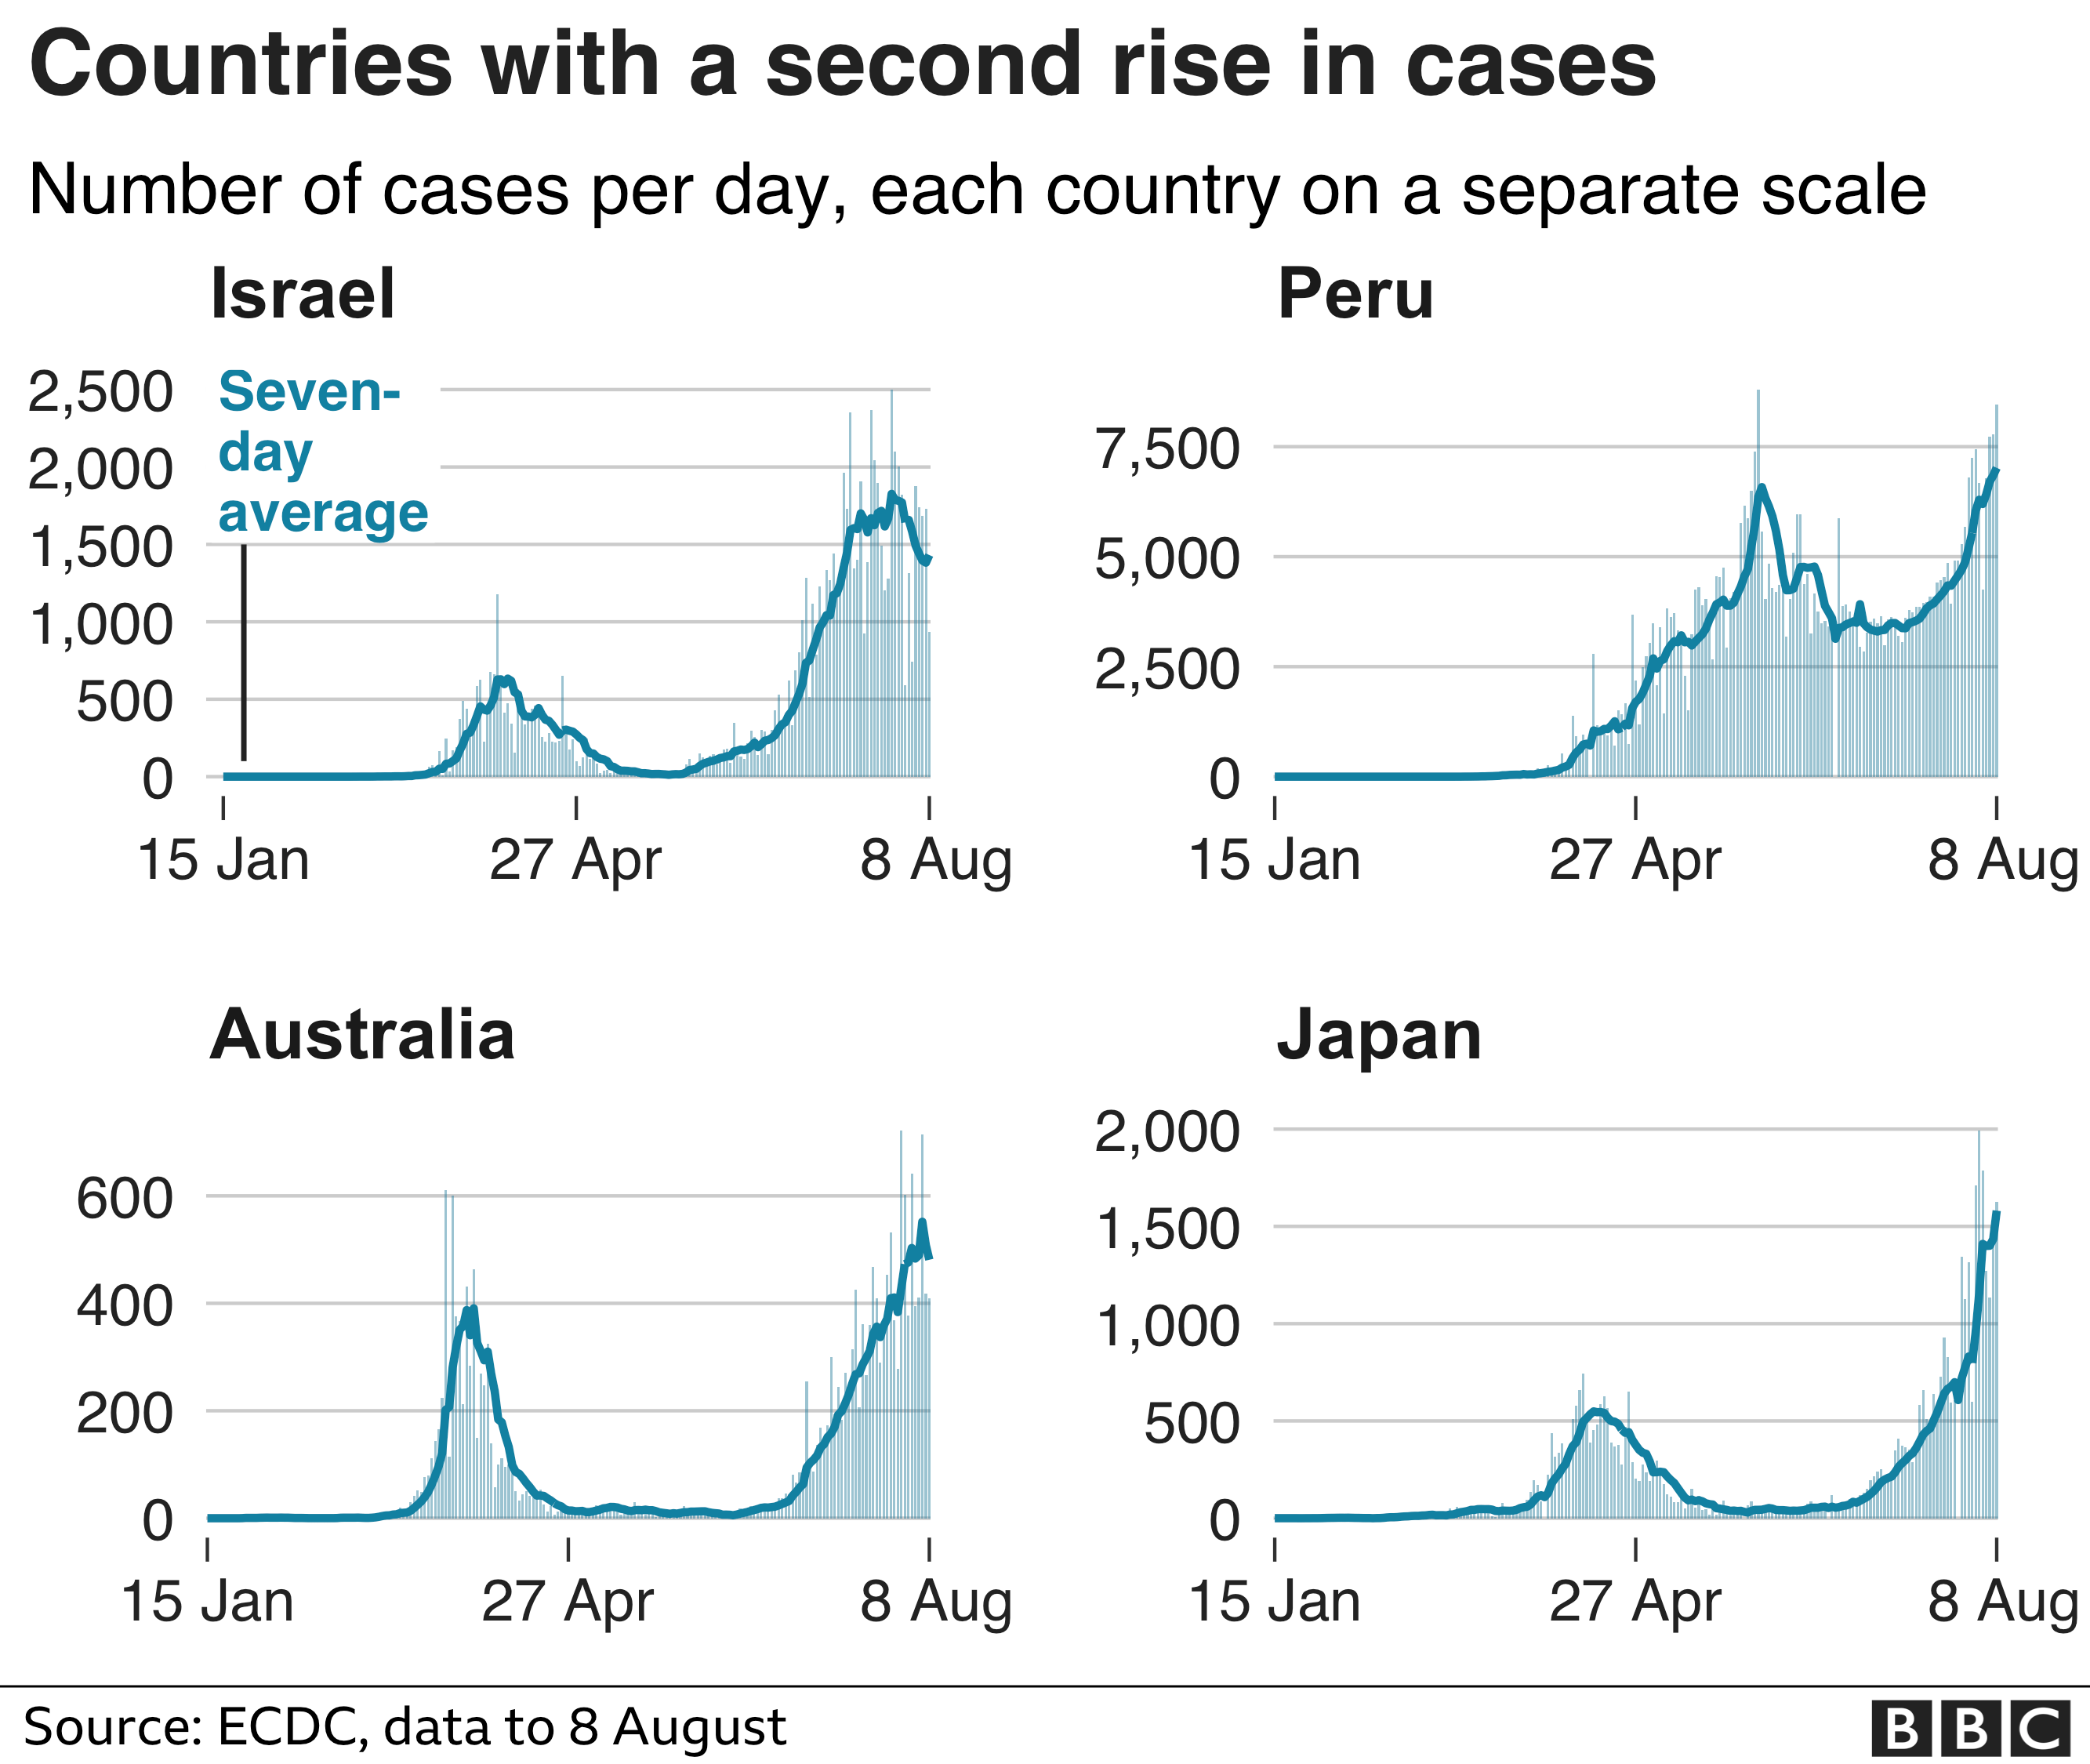 Chart shows countries like Israel, Peru, Australia and Japan have had a second rise in cases - 9 August